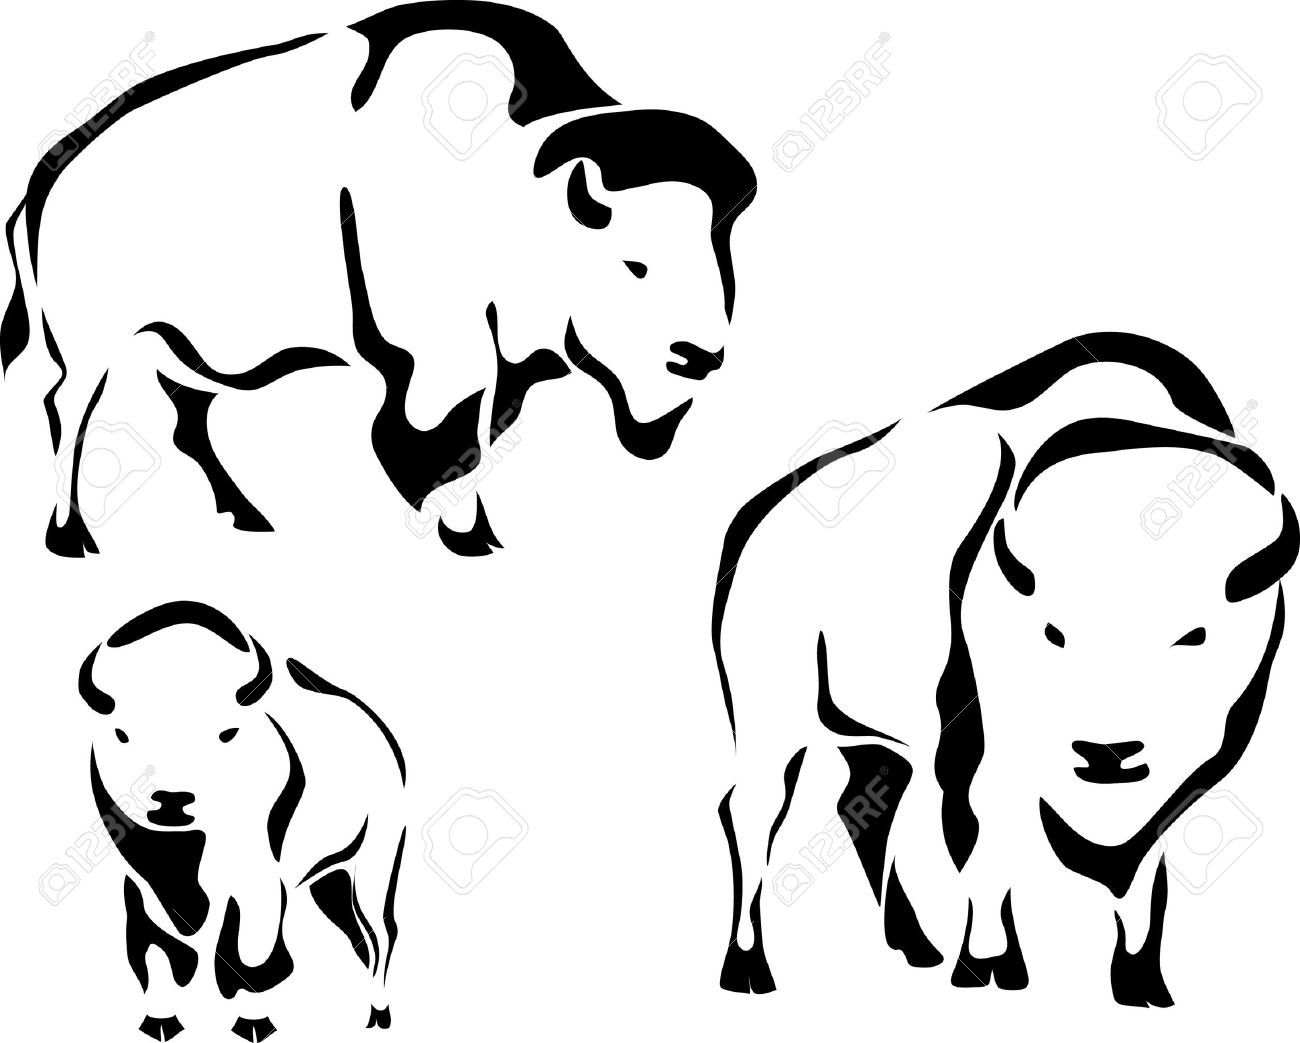 Images tribal google search. Bison clipart simple